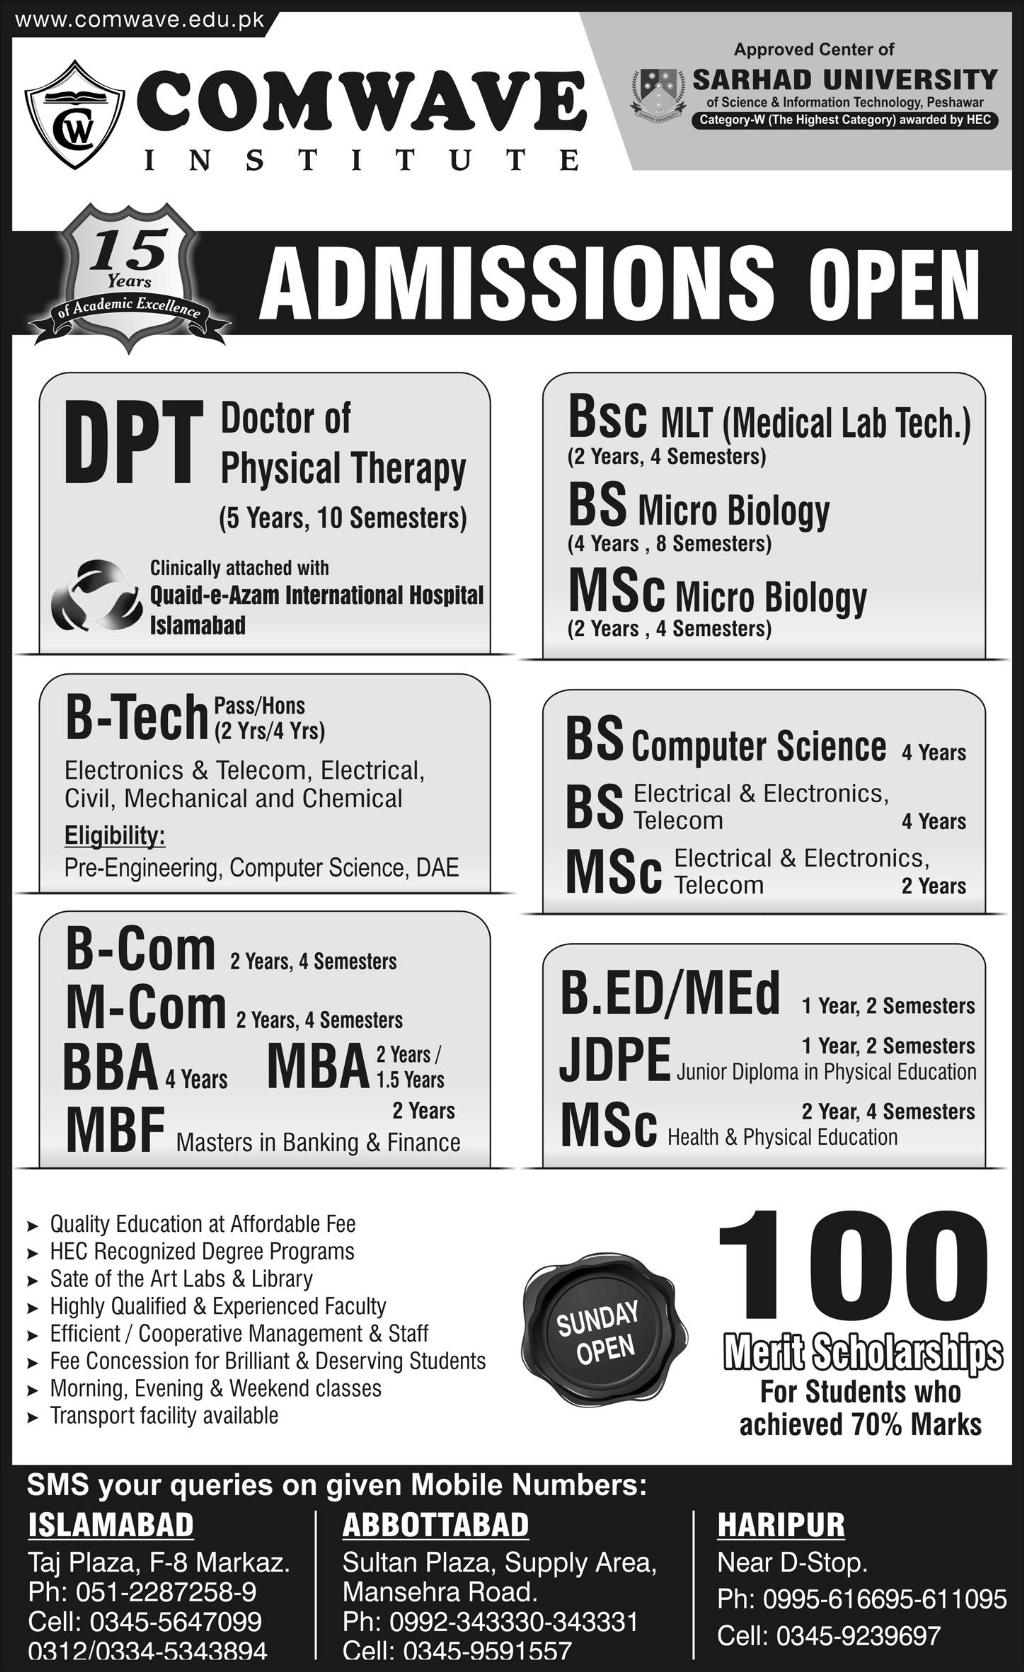 Comwave Institute Of Science & Information Technology Islamabad Admission Notice 2014 for Doctor of Physical Therapy (DPT)